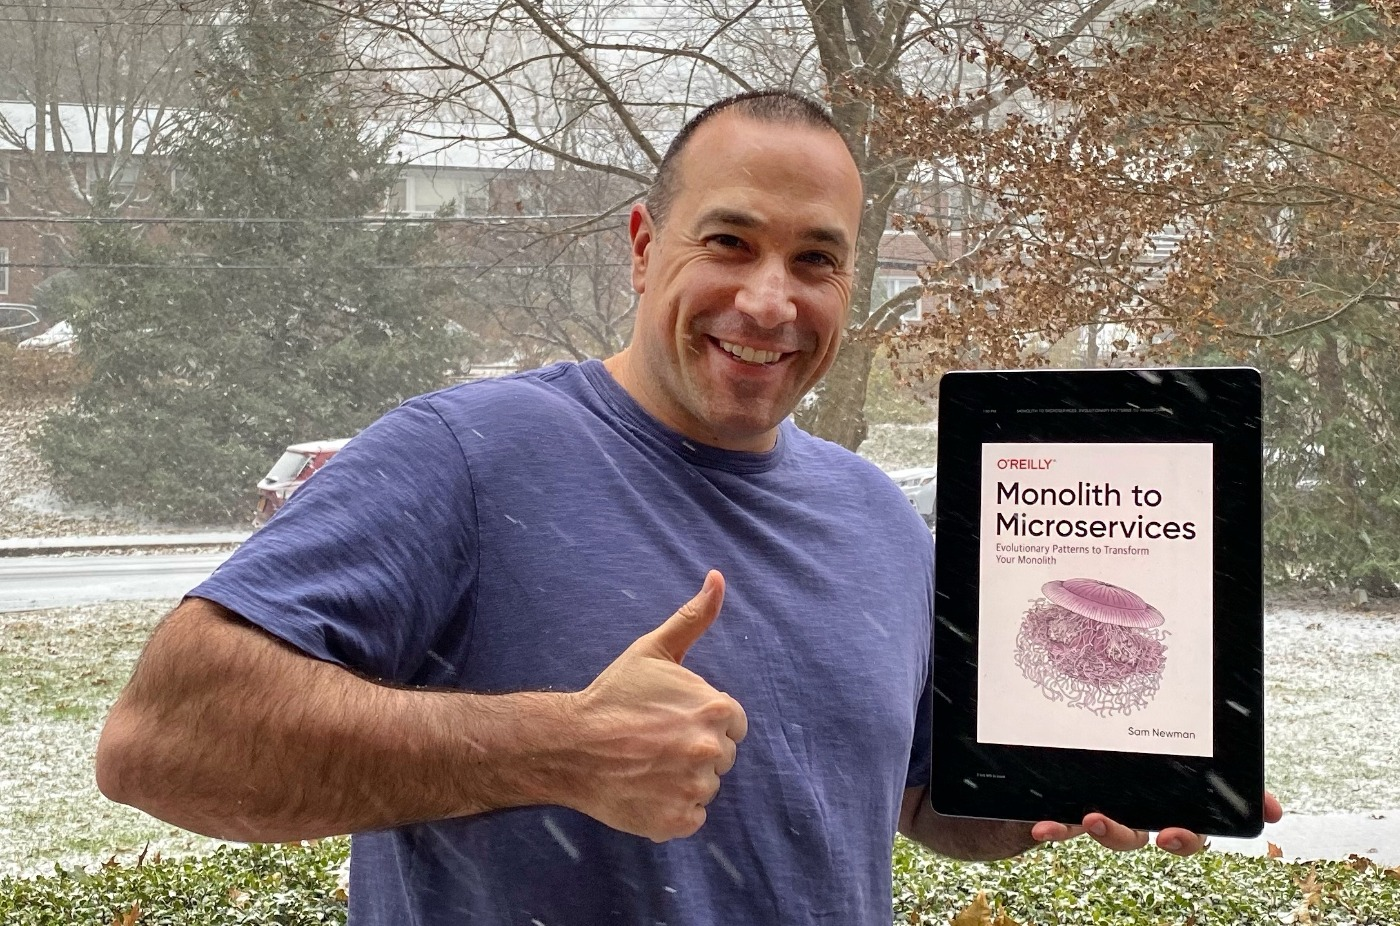 Ben Nadel giving the thumbs-up for Sam Newman's book, Monolith to Microservices.